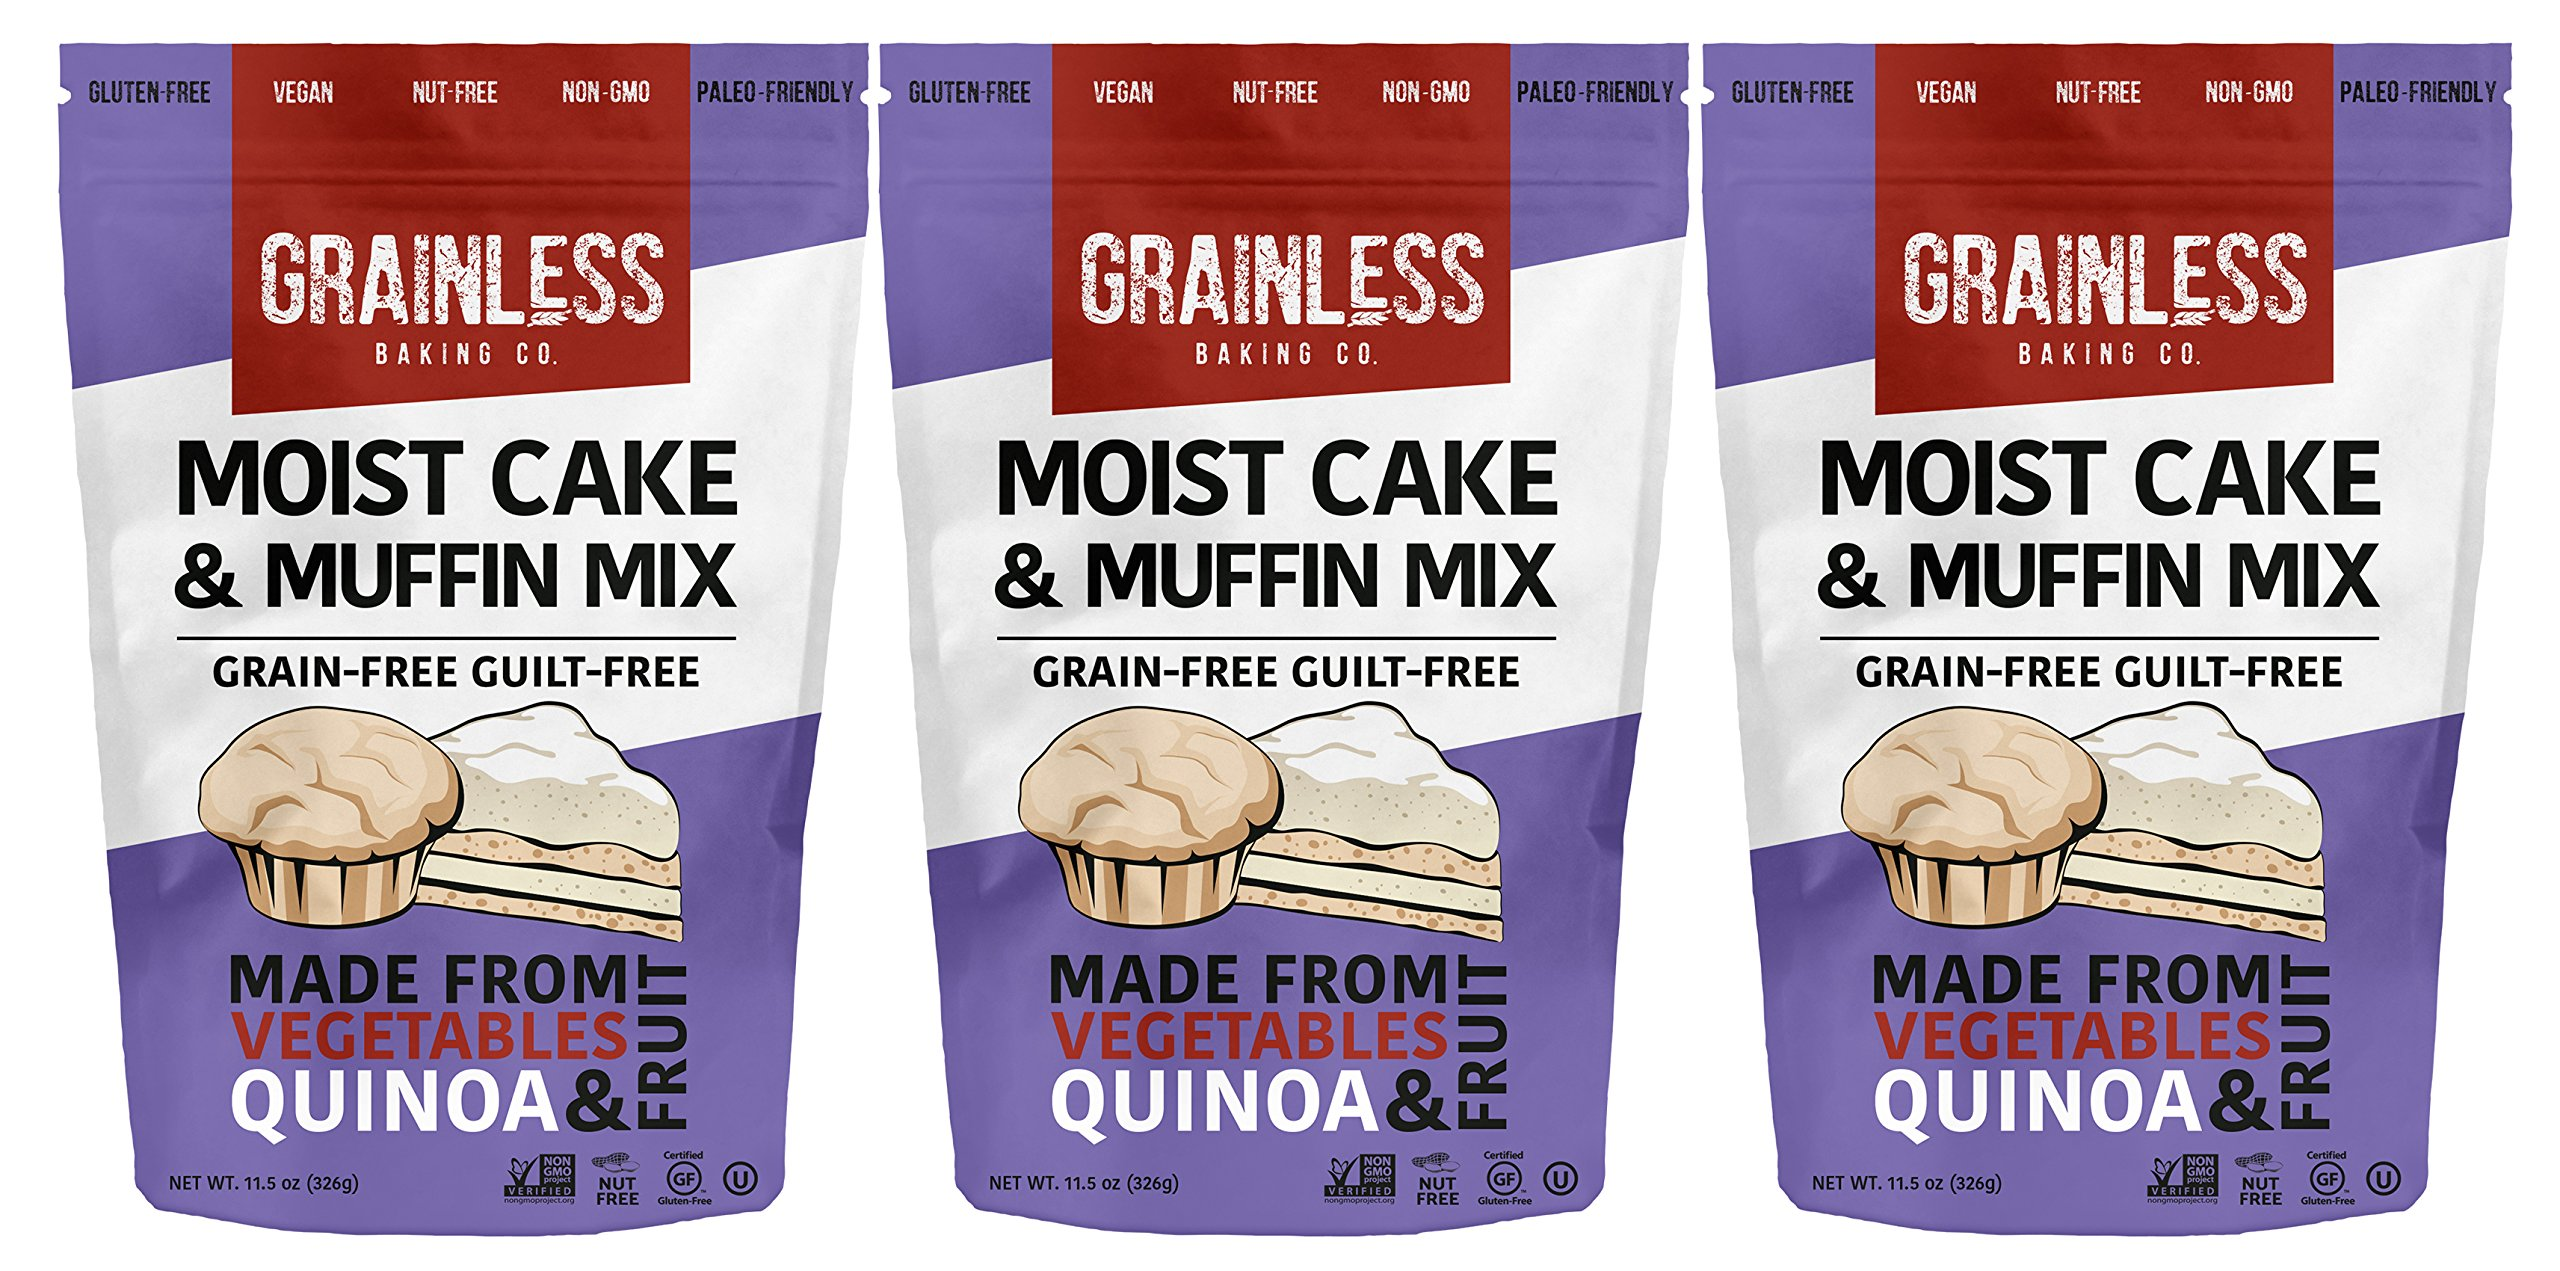 Grainless Grain Free Cake and Muffin Mix - Baking Mix for Grain-Less Cup Cakes, Grain Free Muffins | Gluten Free, Soy Free, Corn Free, Nut Free, Vegan, Paleo Friendly, OU Kosher, 3 Packs by Grainless Baking Company